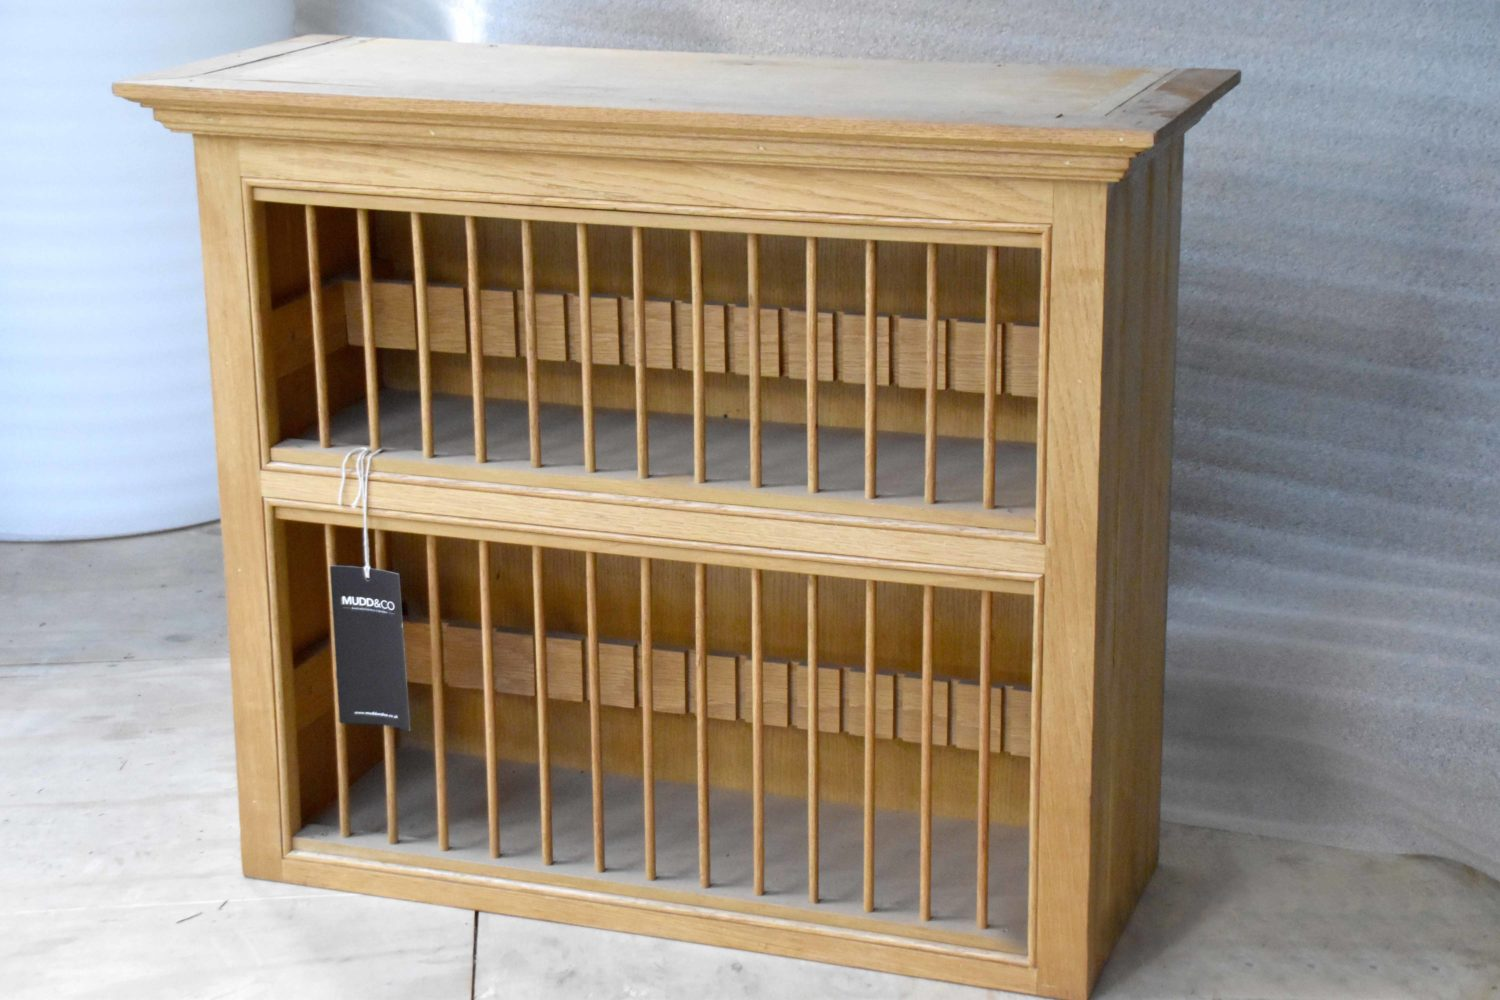 Oak Plate Rack in the Mudd & Co factory sale 2020. Handcrafted kitchen and home furniture